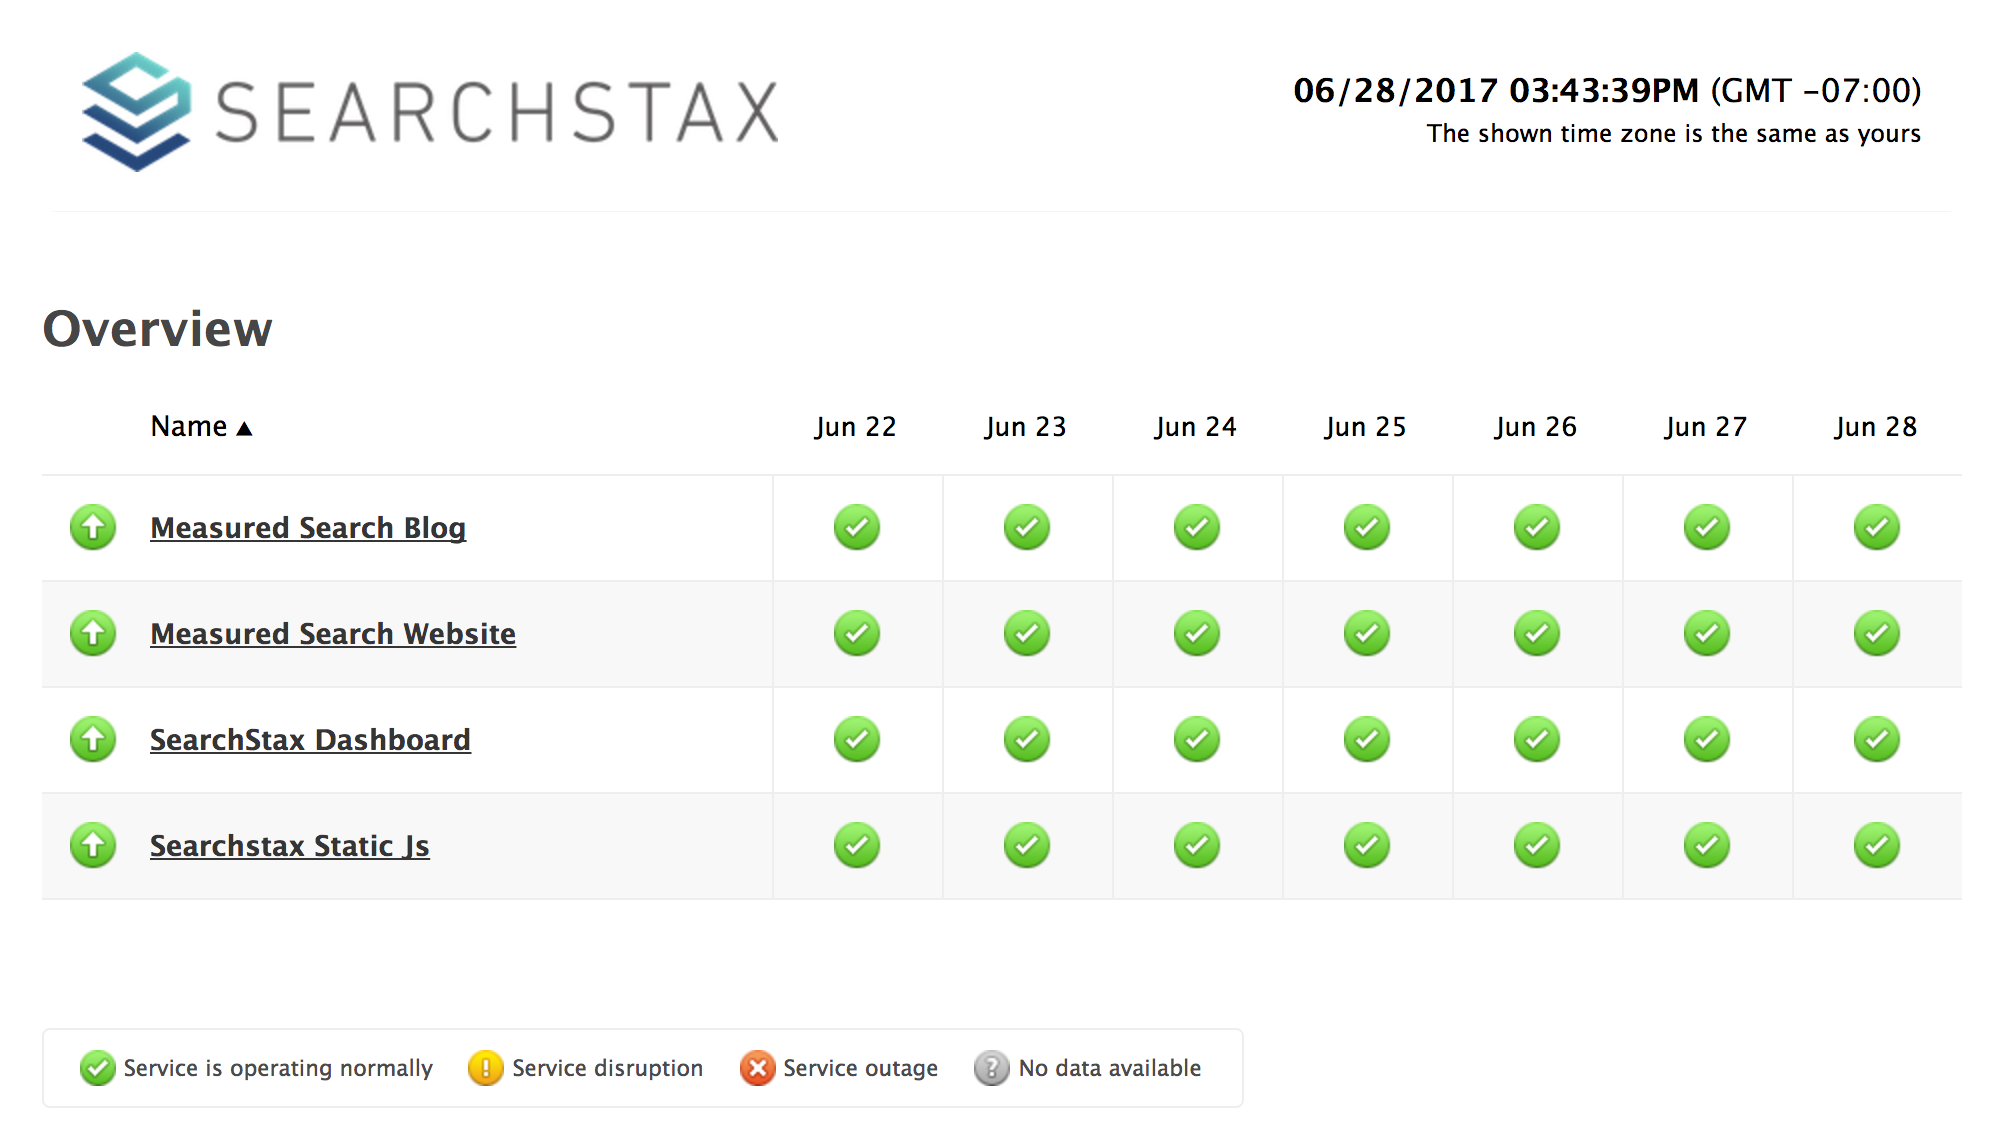 SearchStax Uptime Status Page